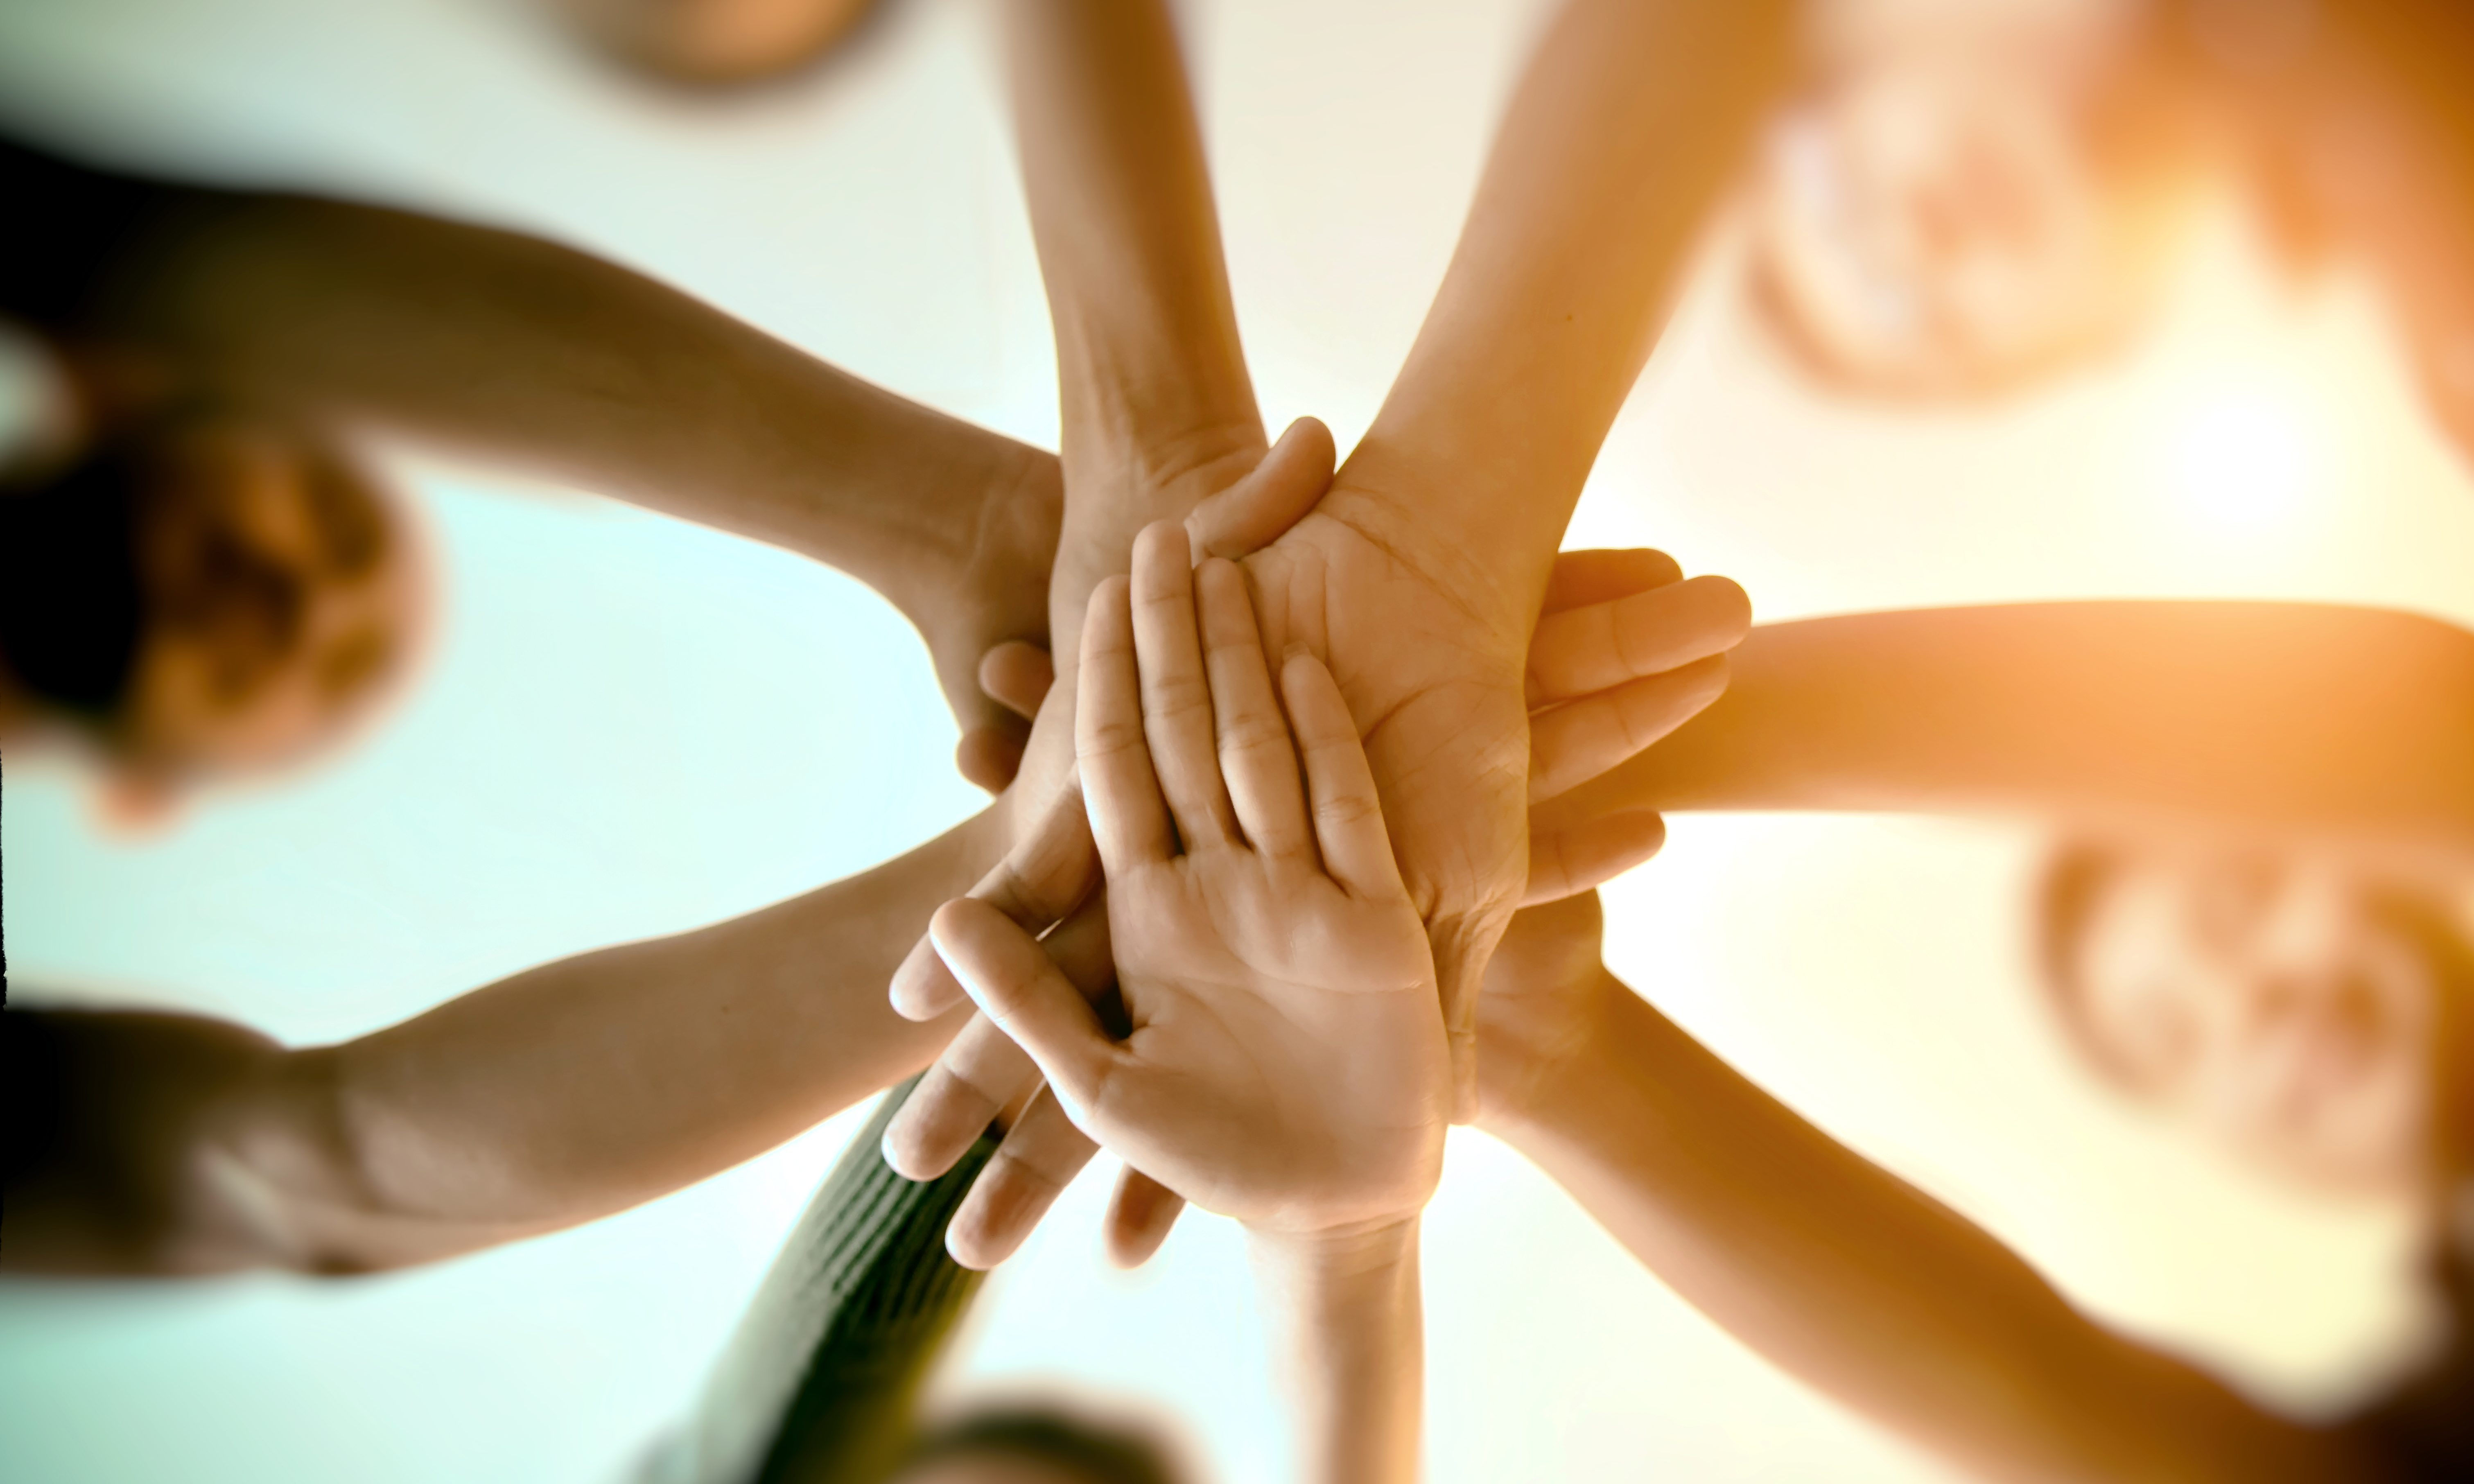 Group of people connecting hands in a show of teamwork